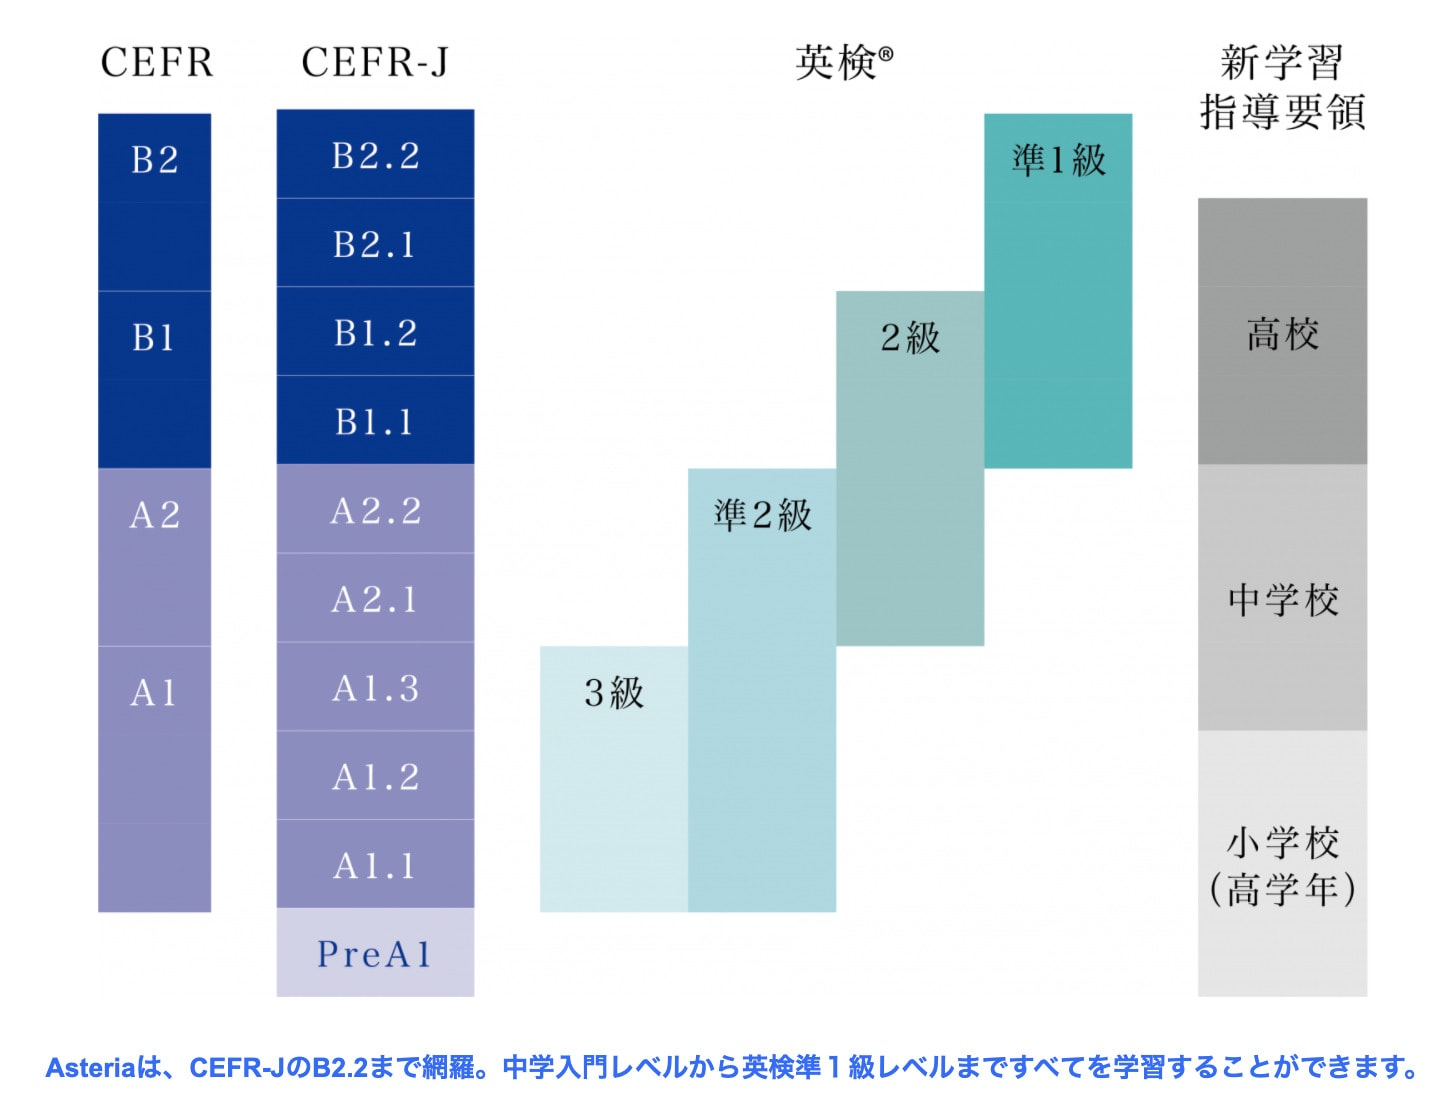 Z会AsteriaはCEFRに対応した教材